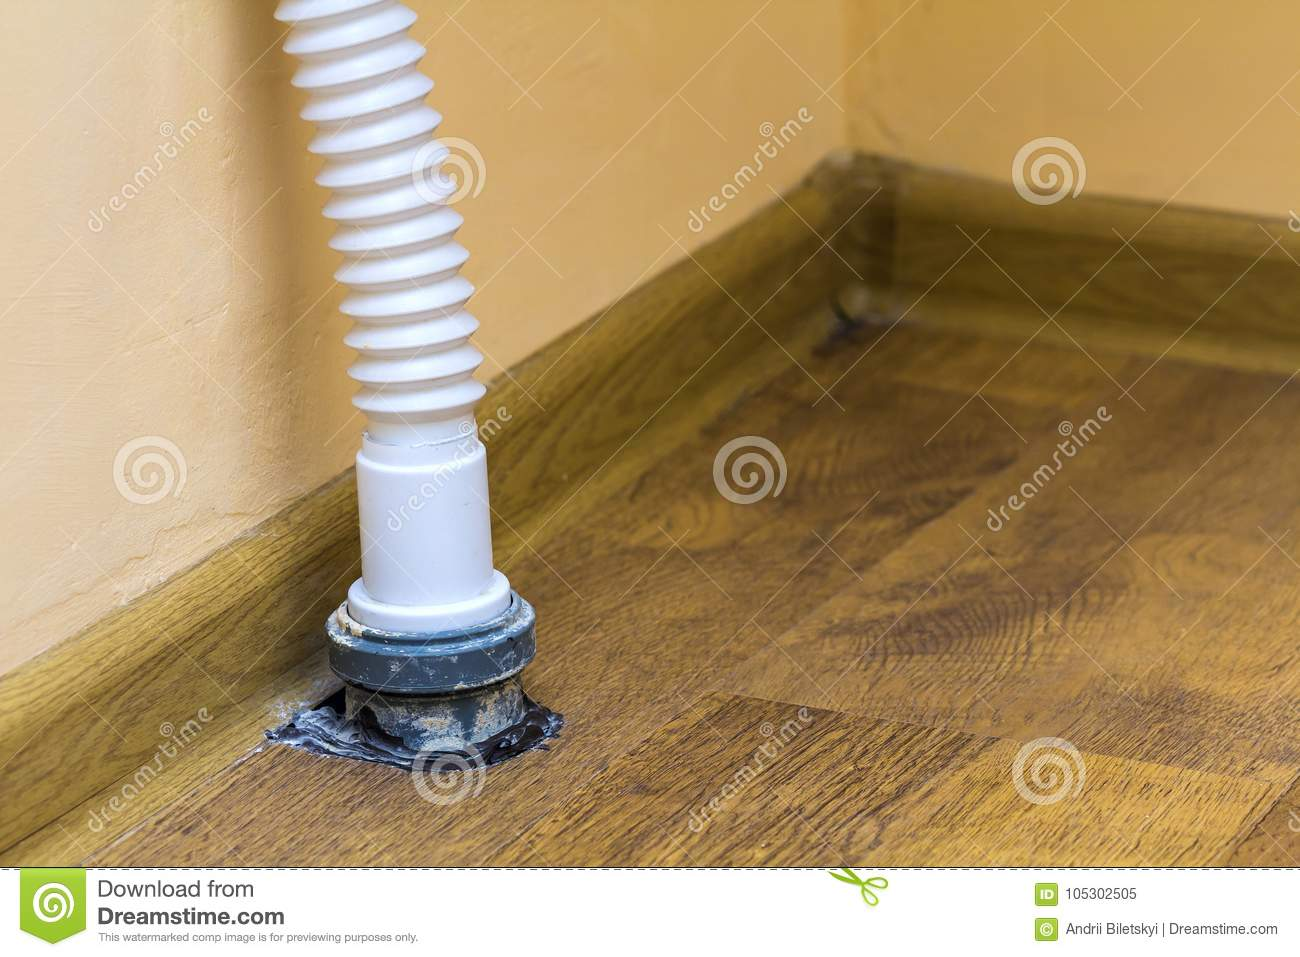 Sewer Drain Pipe Under The Kitchen Sink Stock Image Image Of House Industrial 105302505